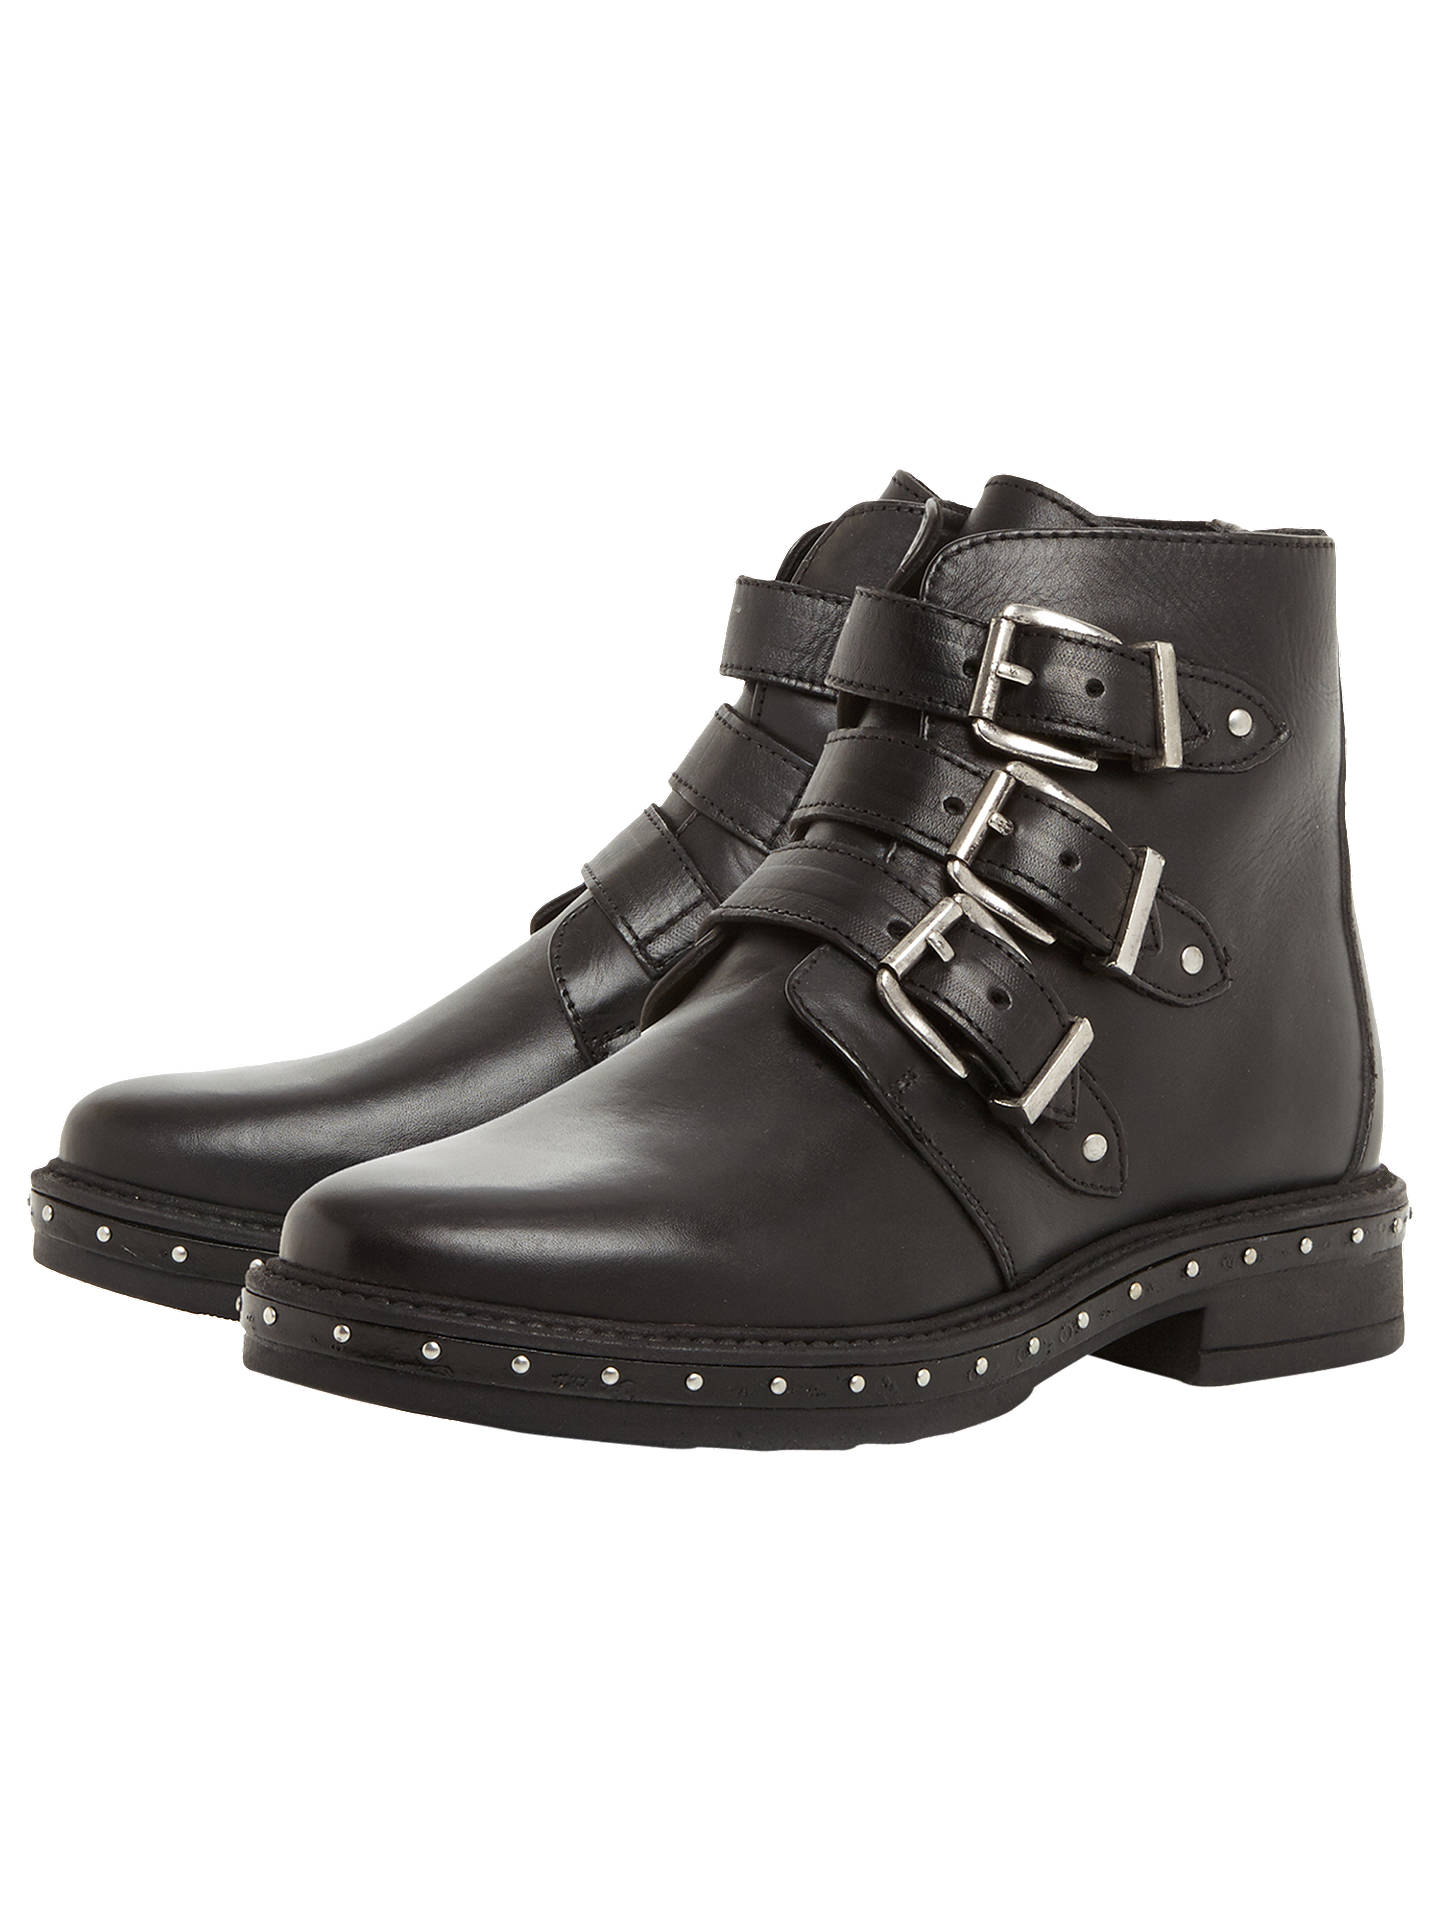 Buy Steve Madden Matika Buckle Biker Boots, Black, 3 Online at johnlewis.com